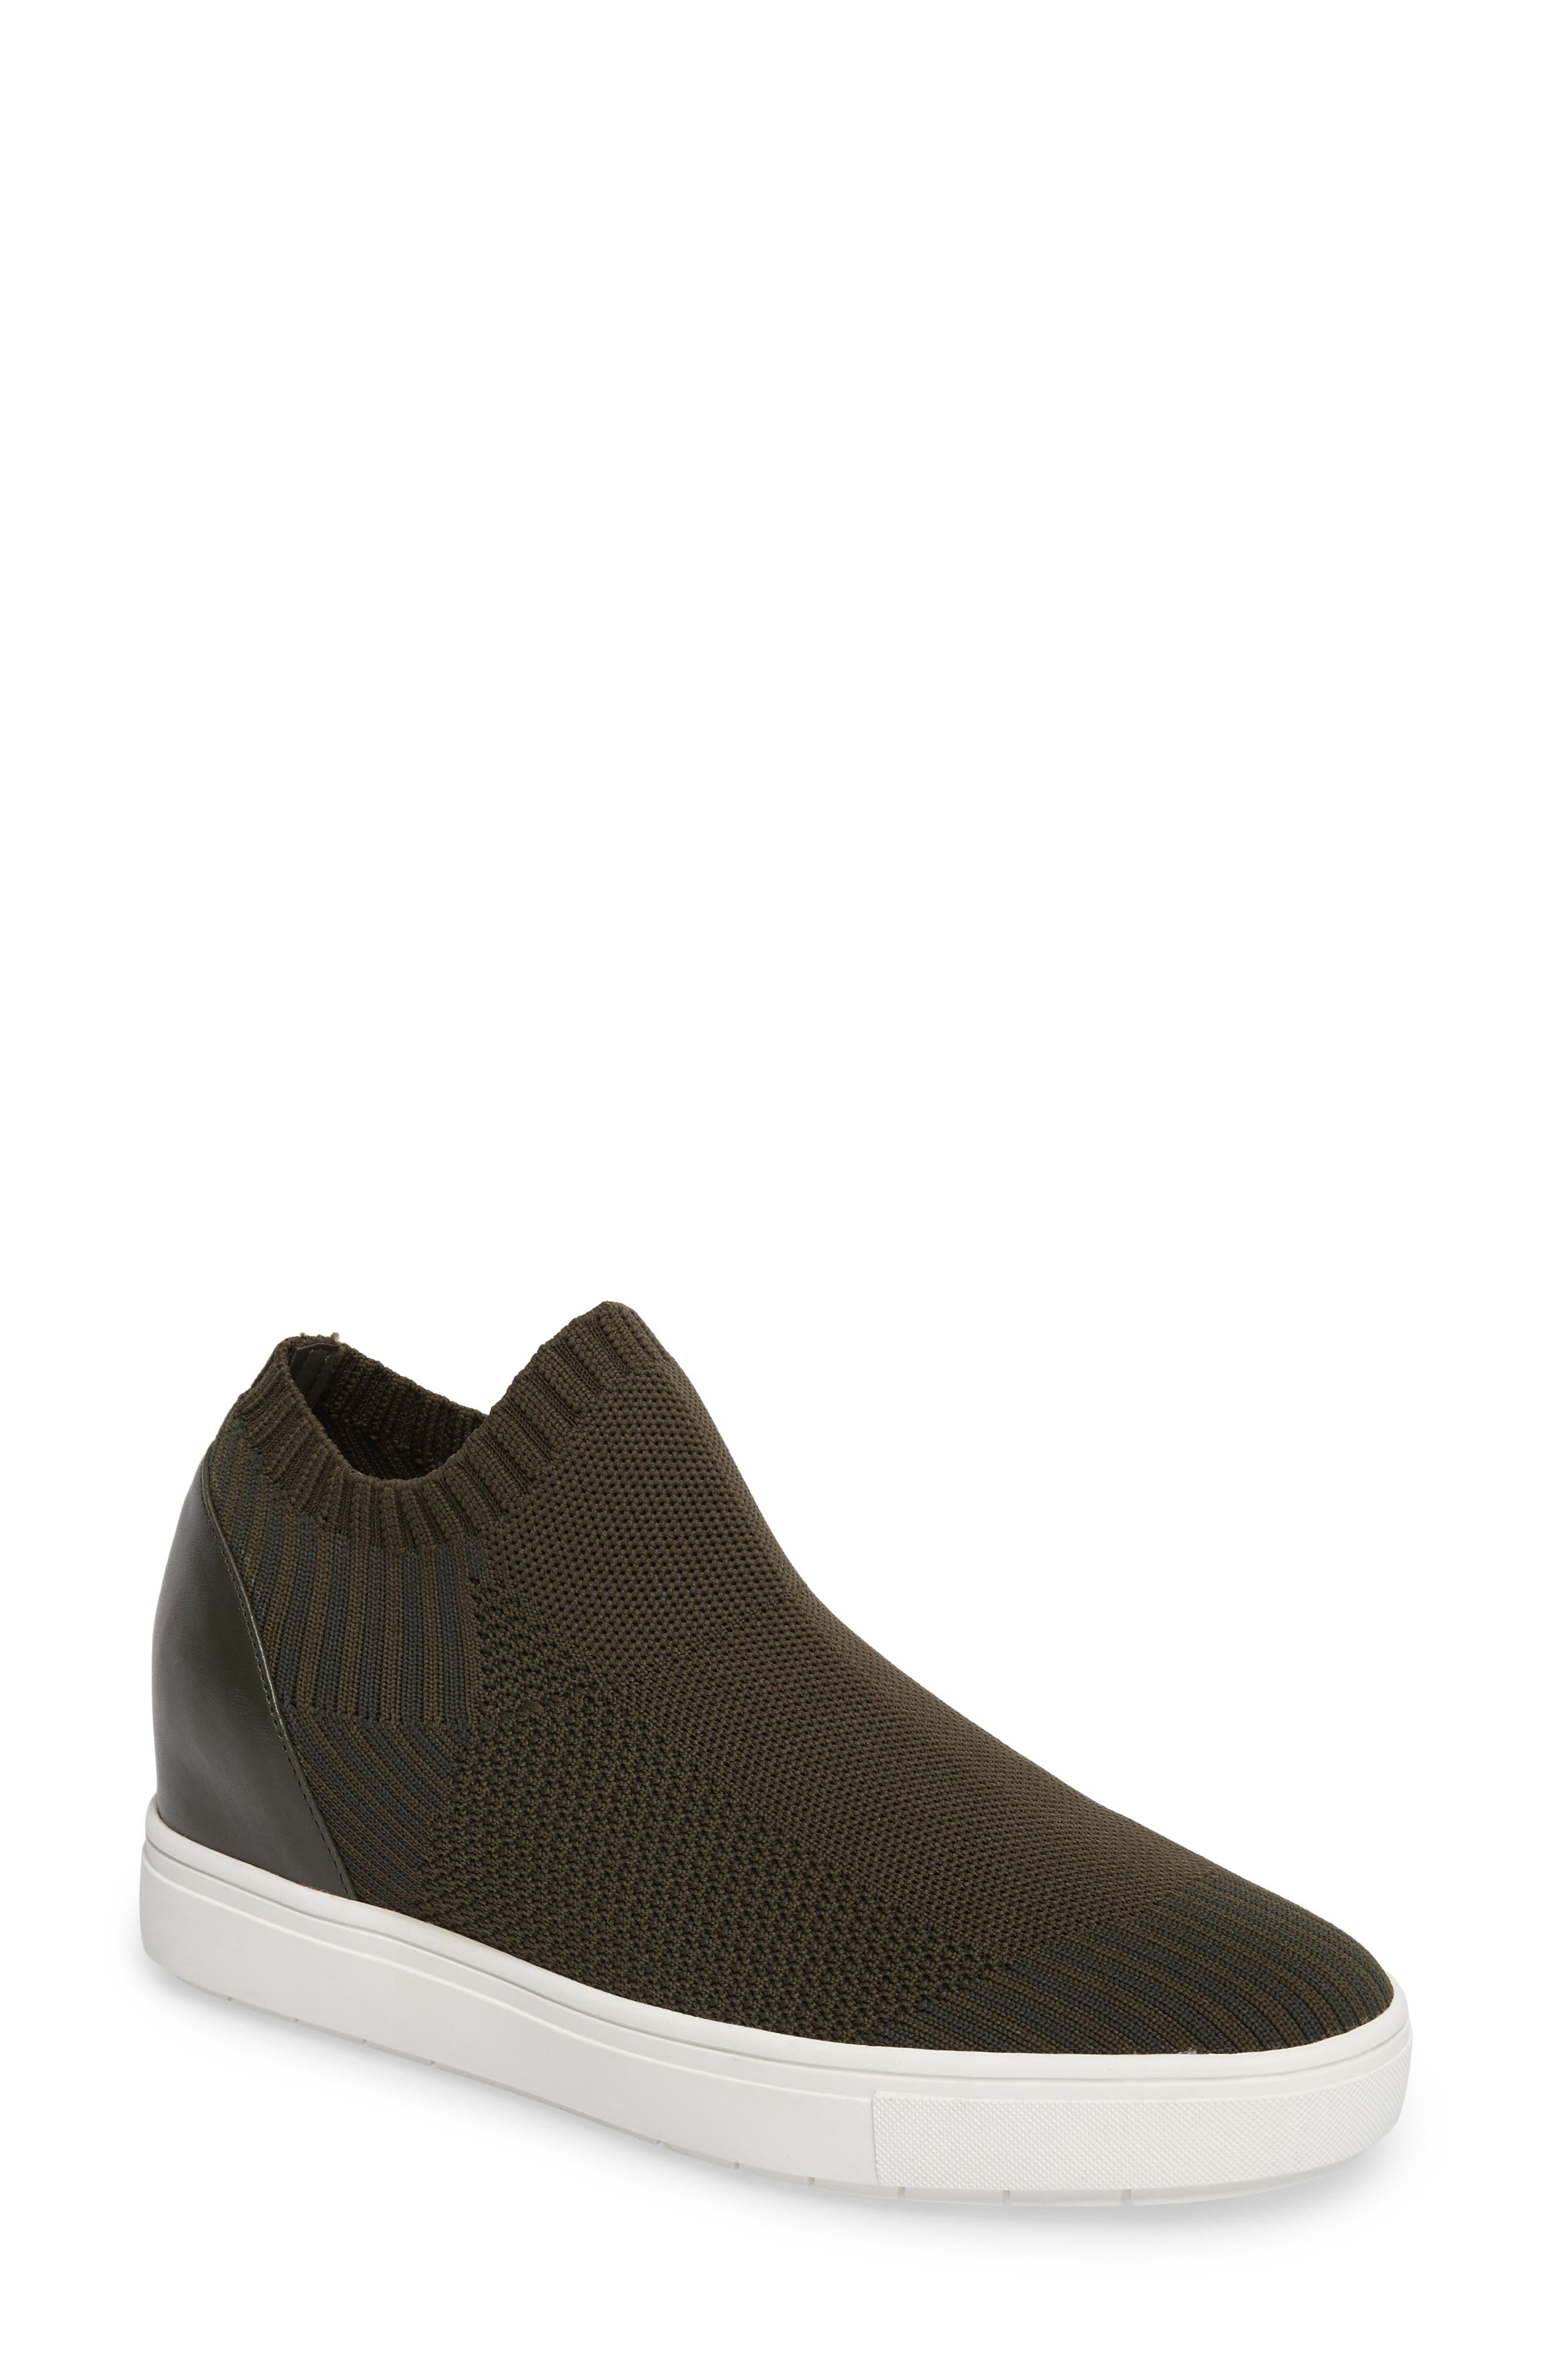 Sly Hidden Wedge Knit Sneaker,                             Main thumbnail 1, color,                             Olive Fabric